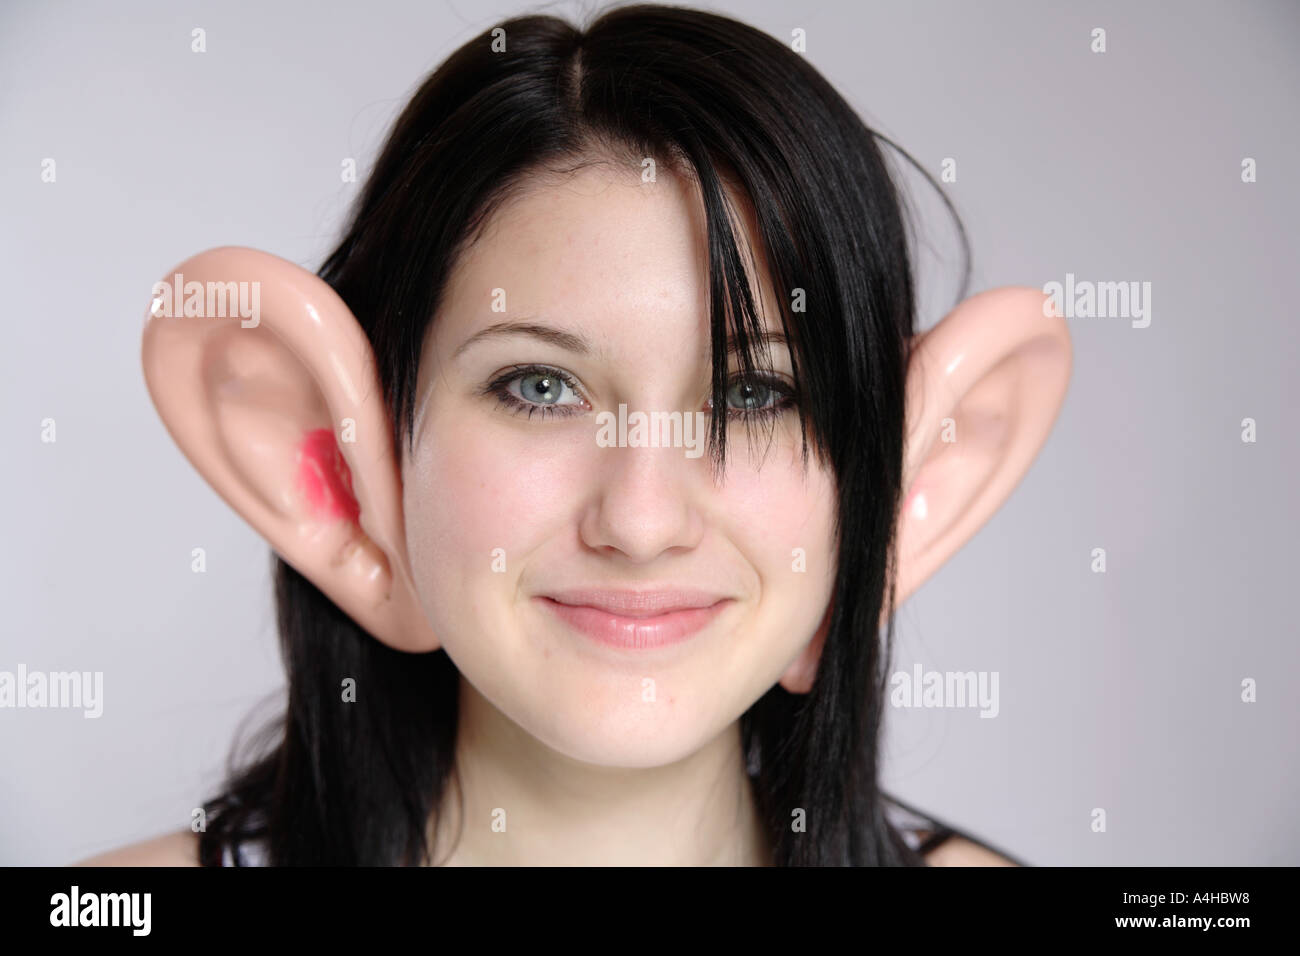 Humorous image of Young girl aged 16 with black hair ...